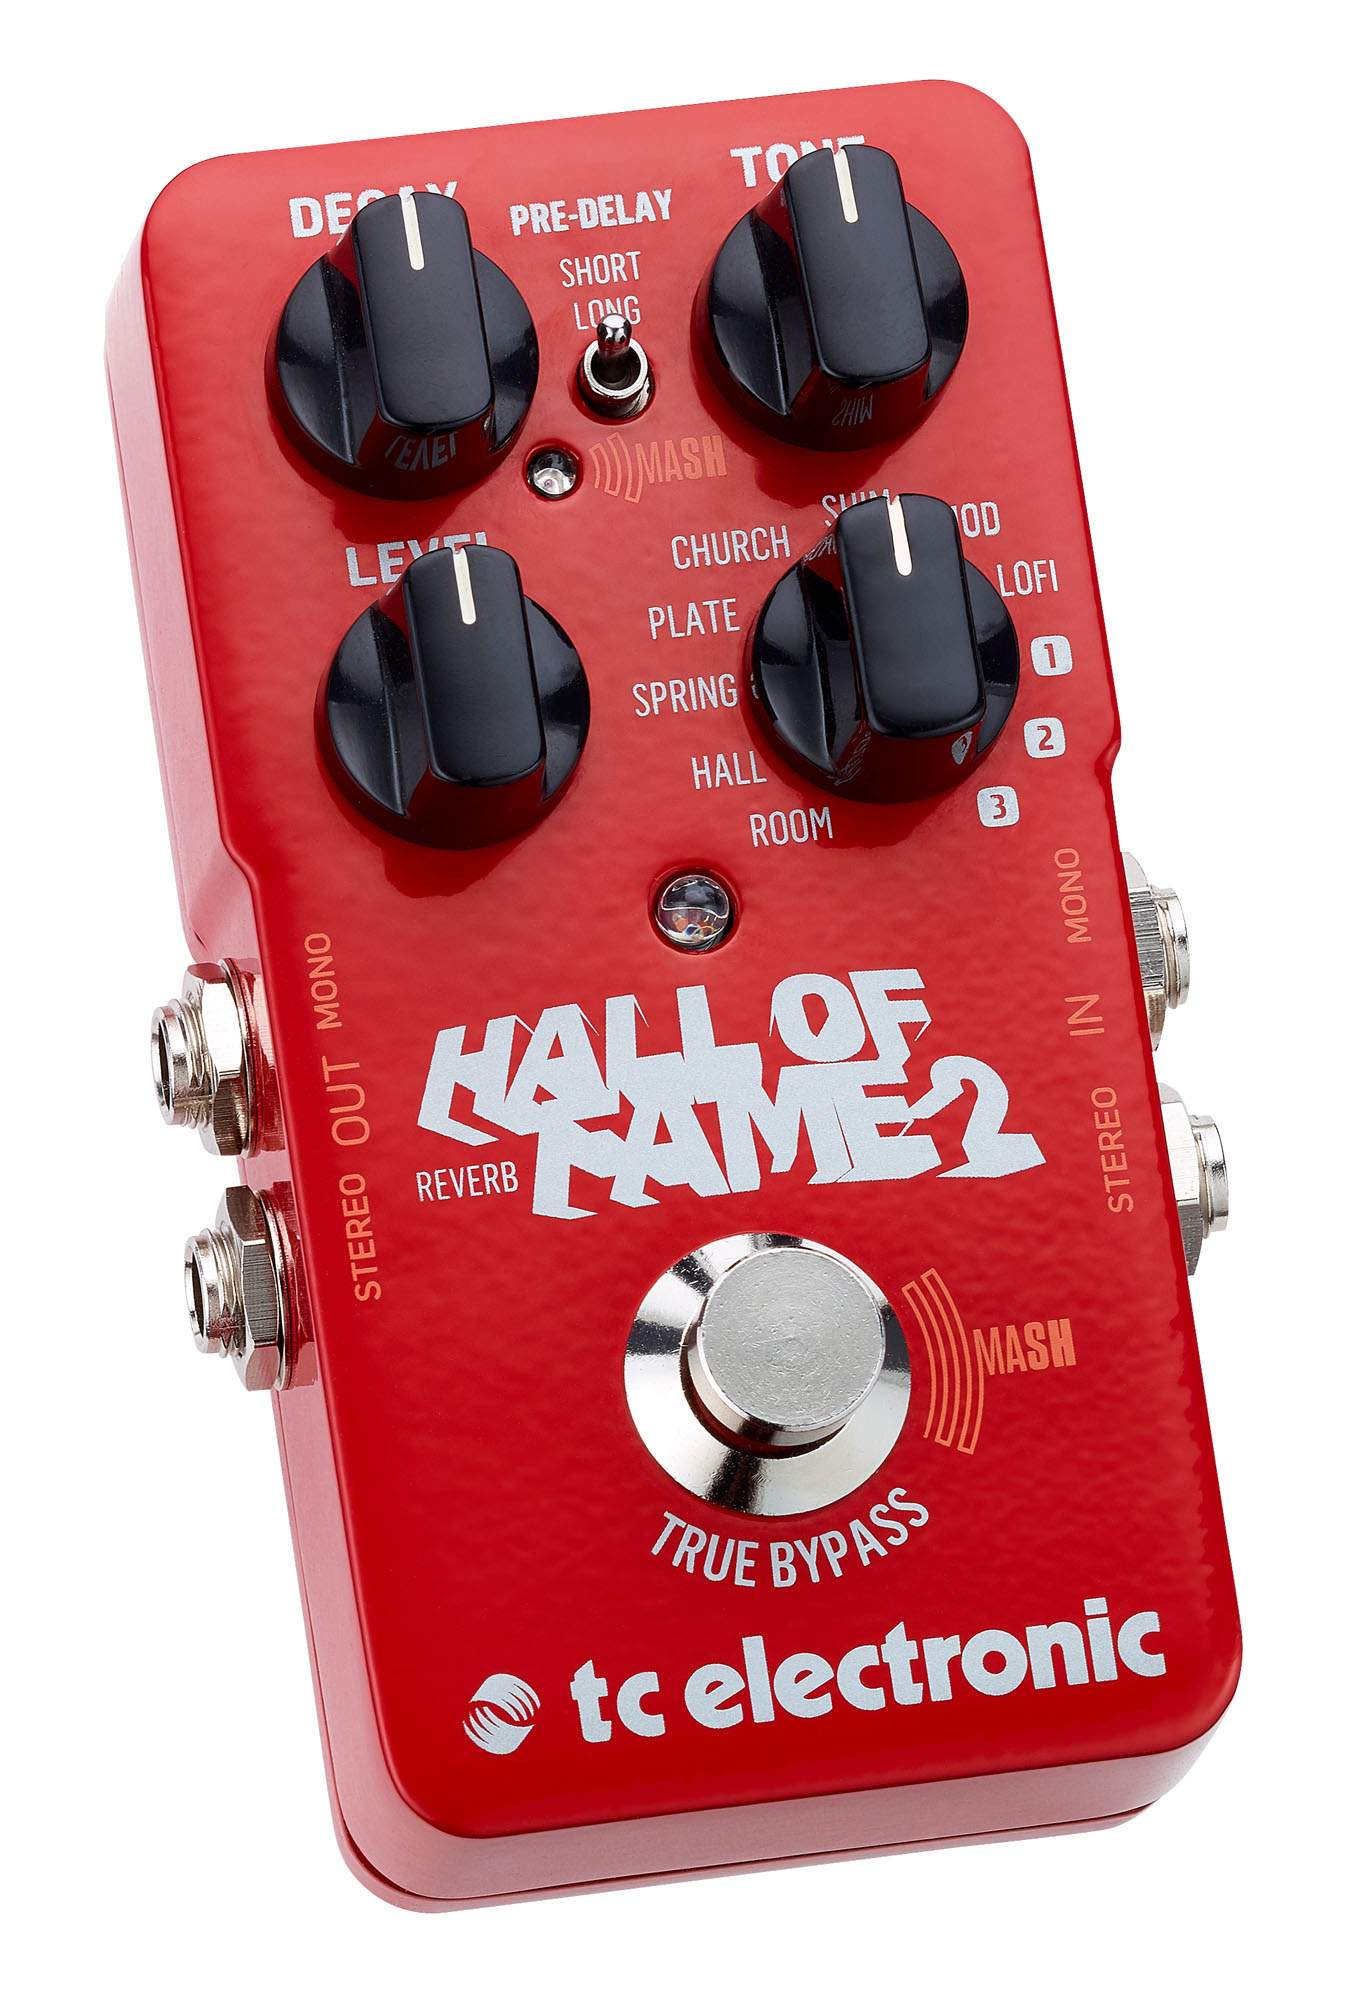 hall-of-fame-2-reverb-persp-left-hies.